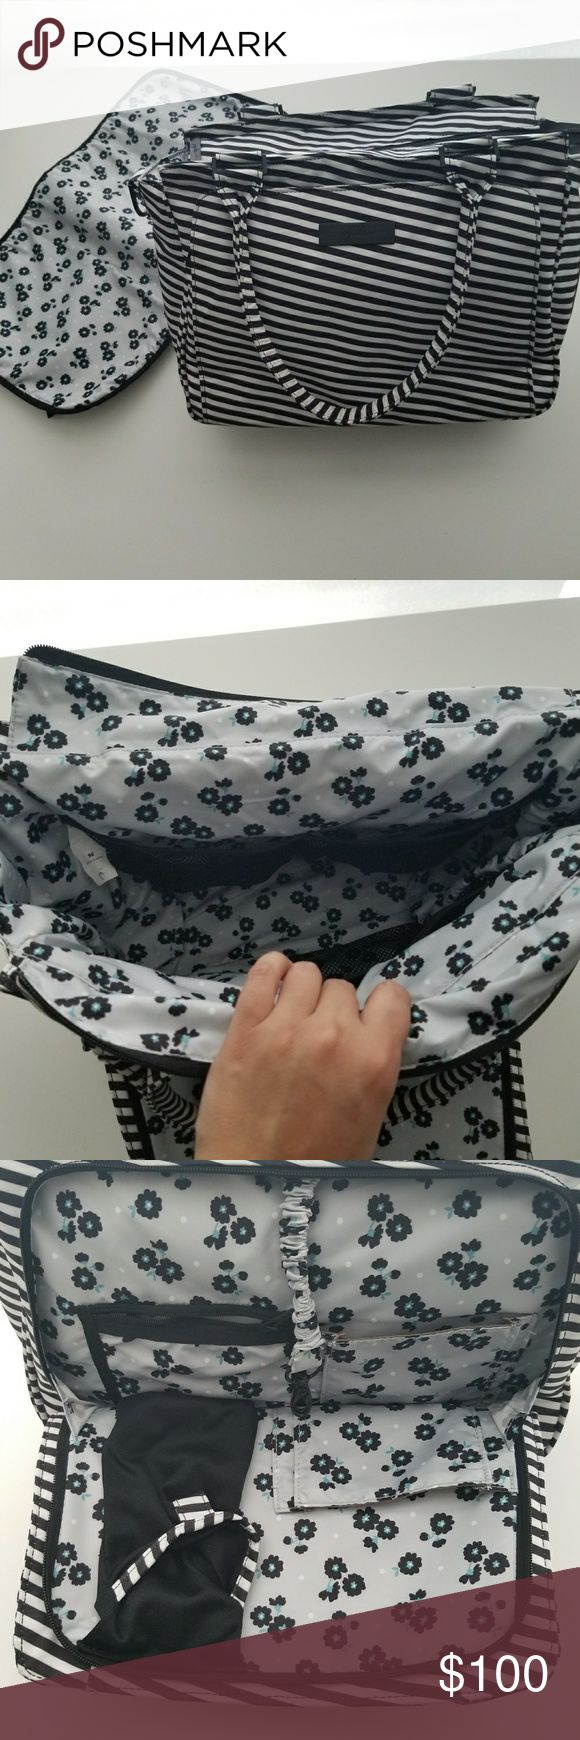 Jujube Be Classy Black Magic Excellent condition, used it twice, ended up going with a smaller bag. I keep it in a tote smoke, dust, pet free. Comes with changing pad. Zippers work, no loose threads or tears. jujube Bags